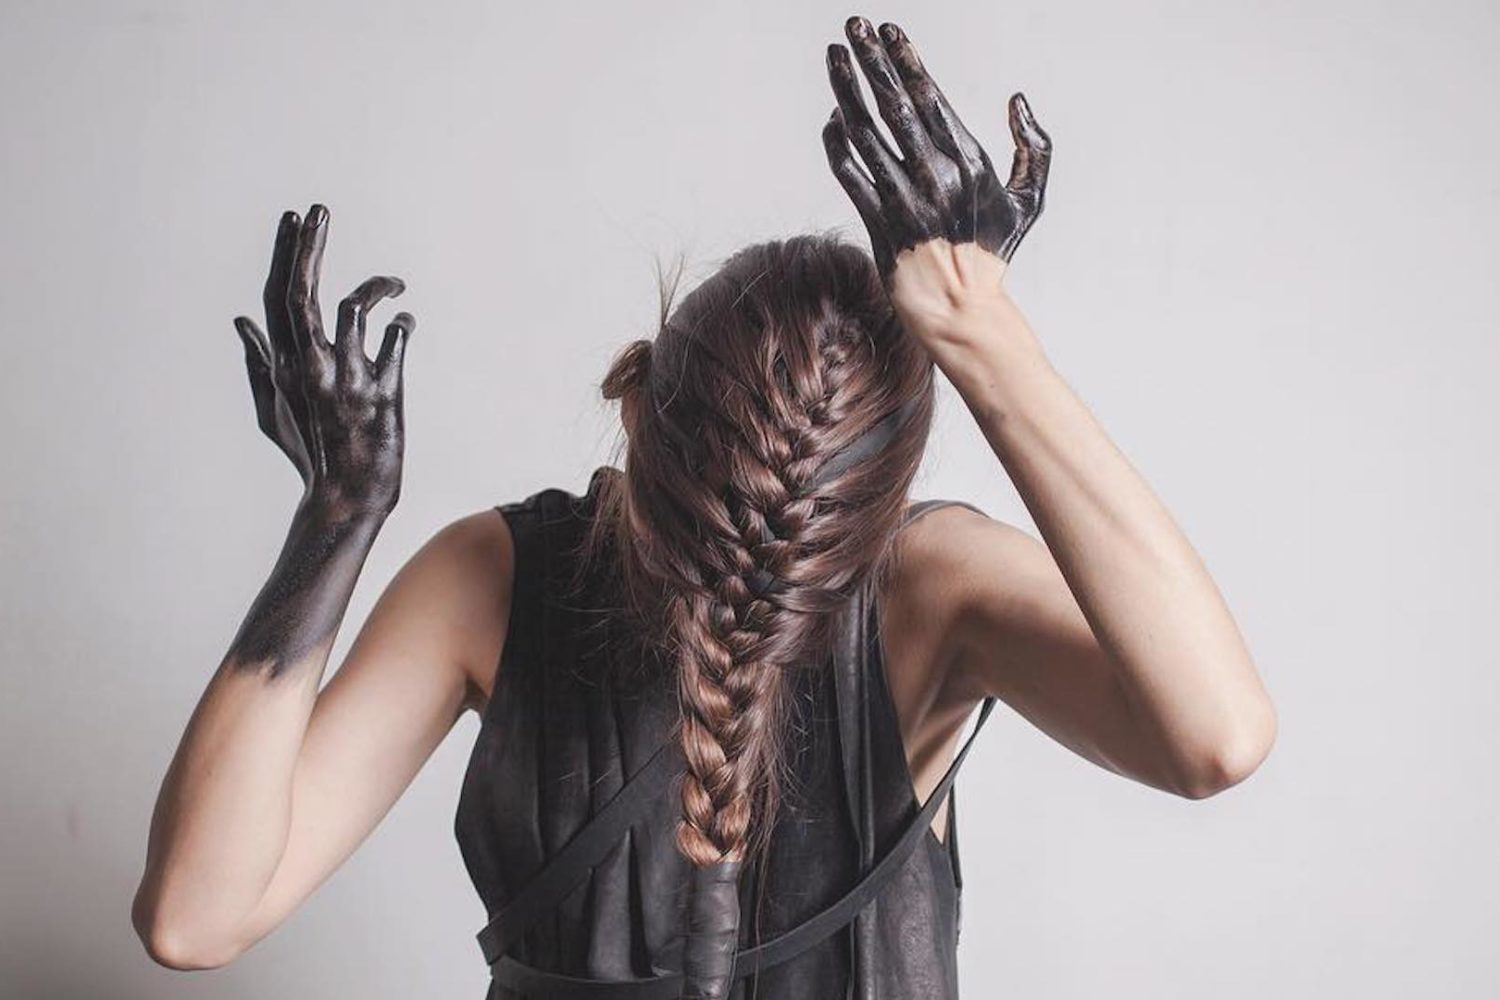 This week in Editors' Choice: Tousled hair and outstretched hands